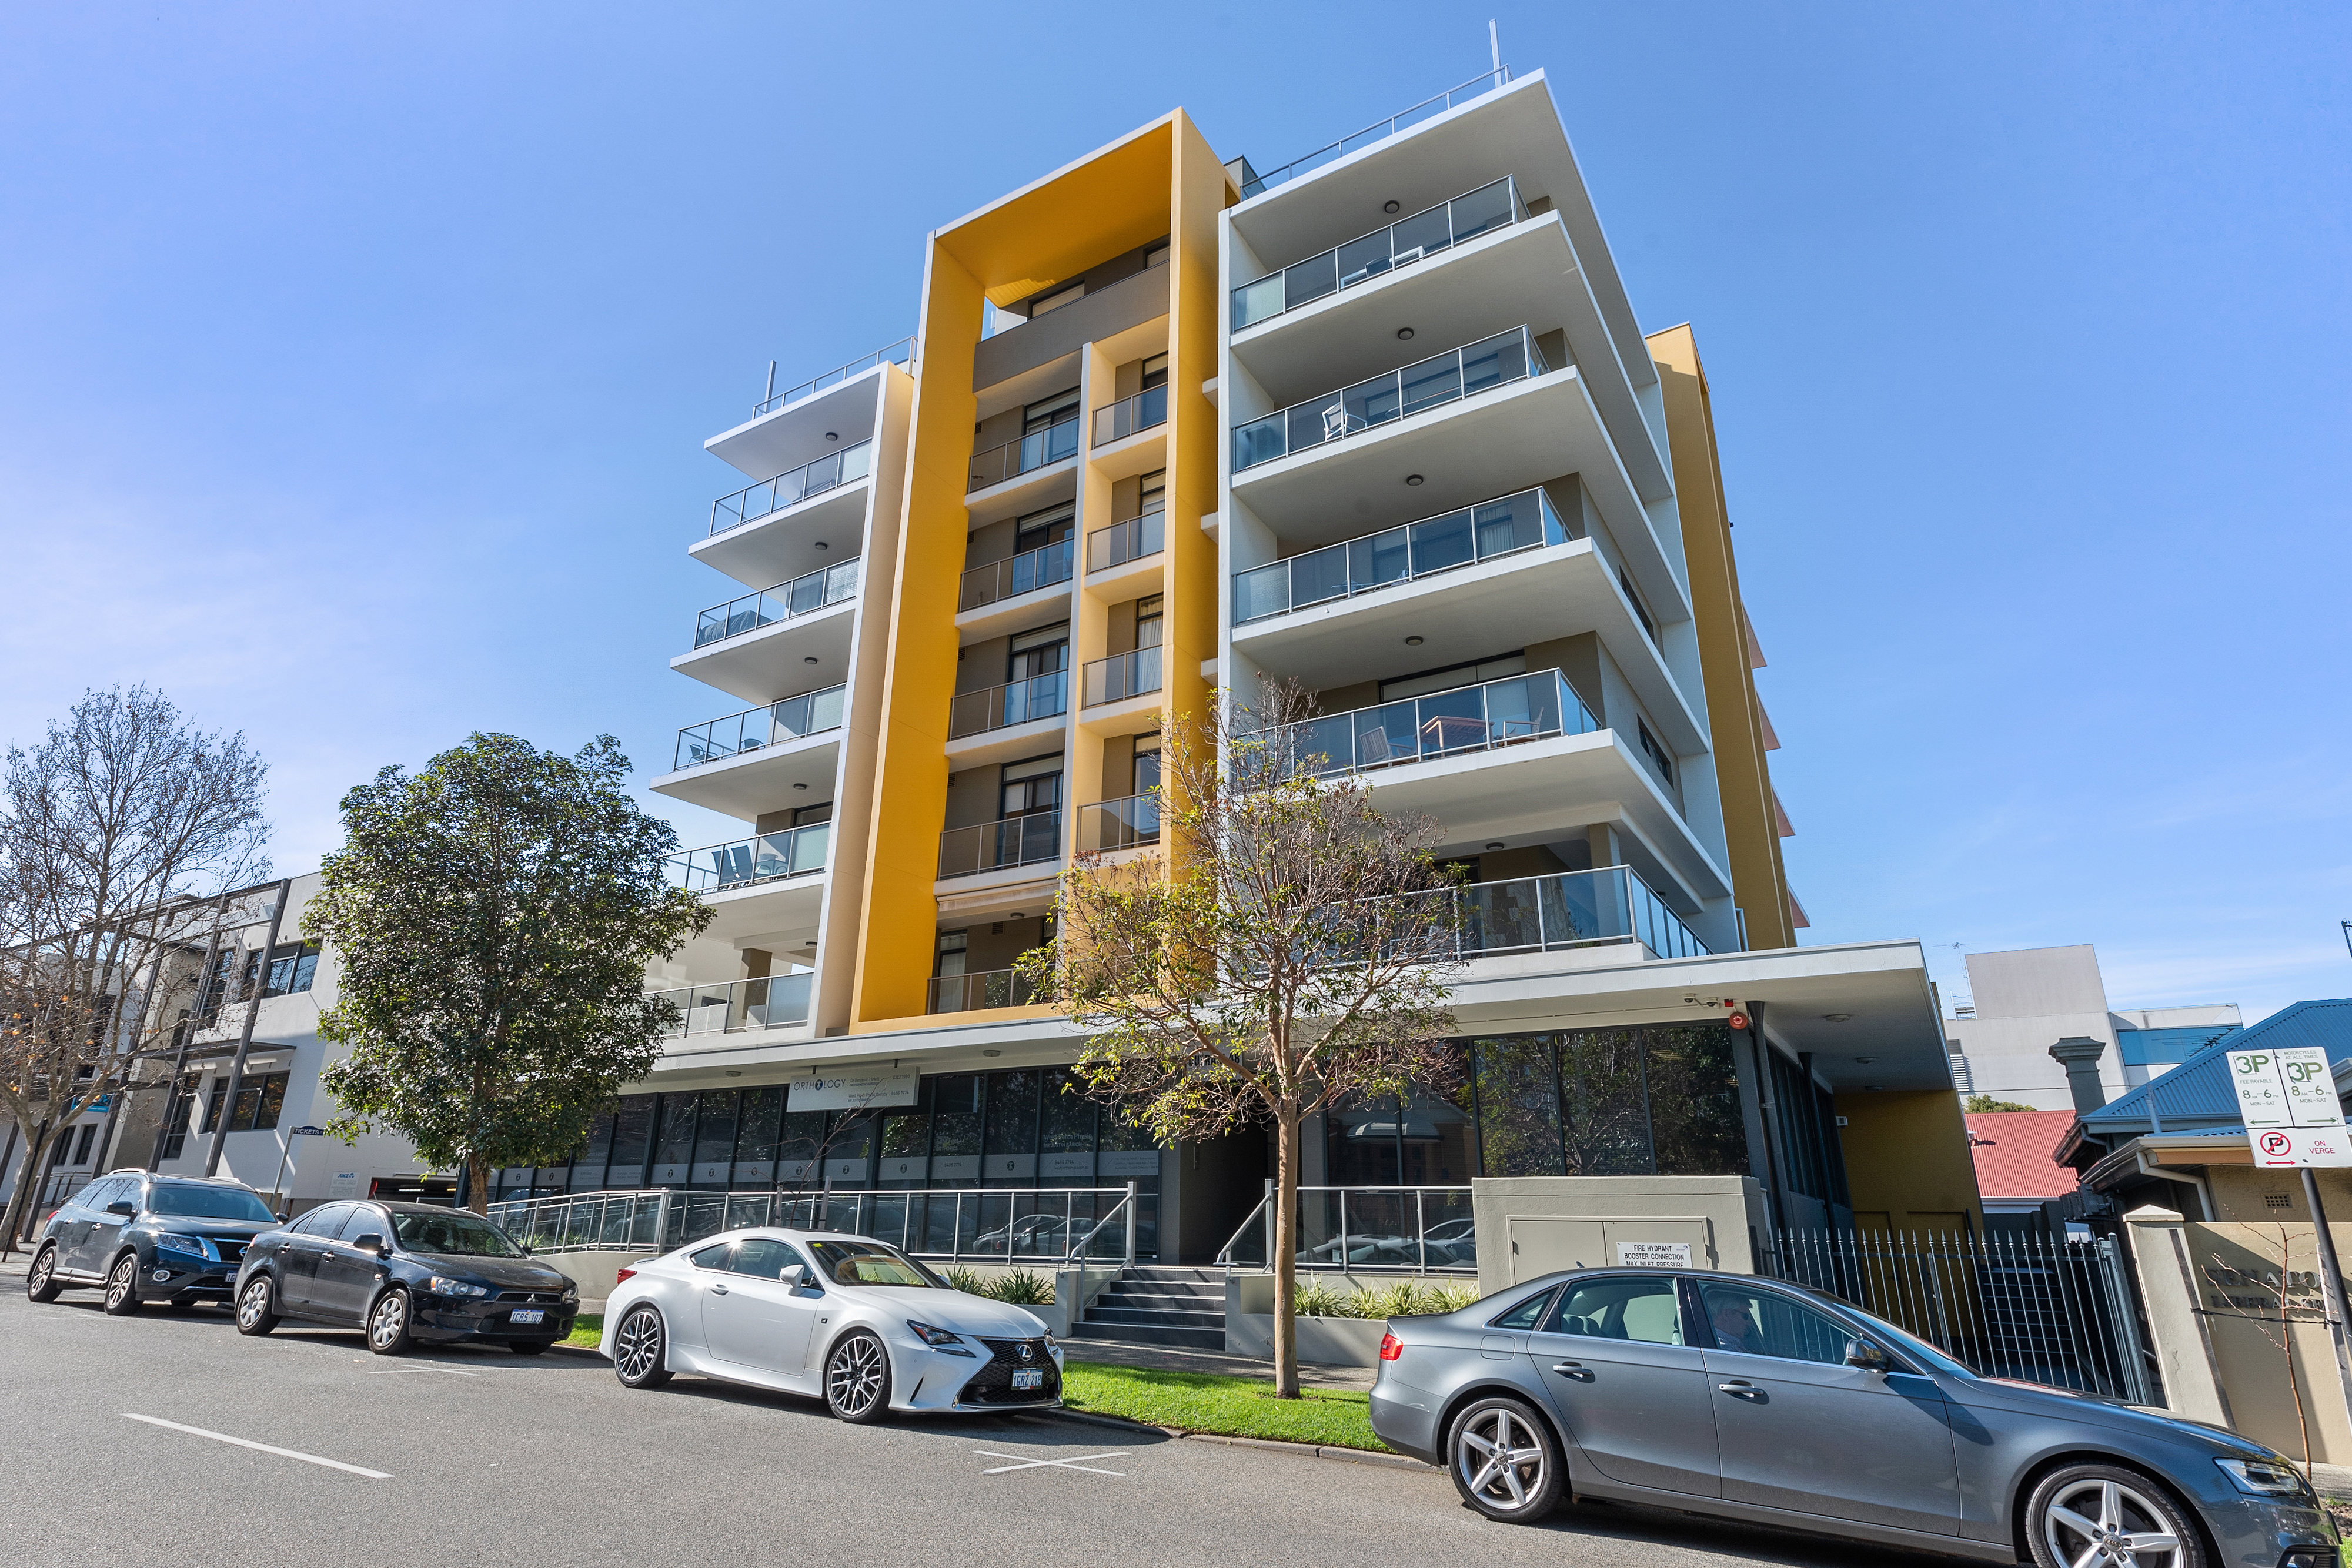 PRINT 202 48 Outram St, West Perth 29